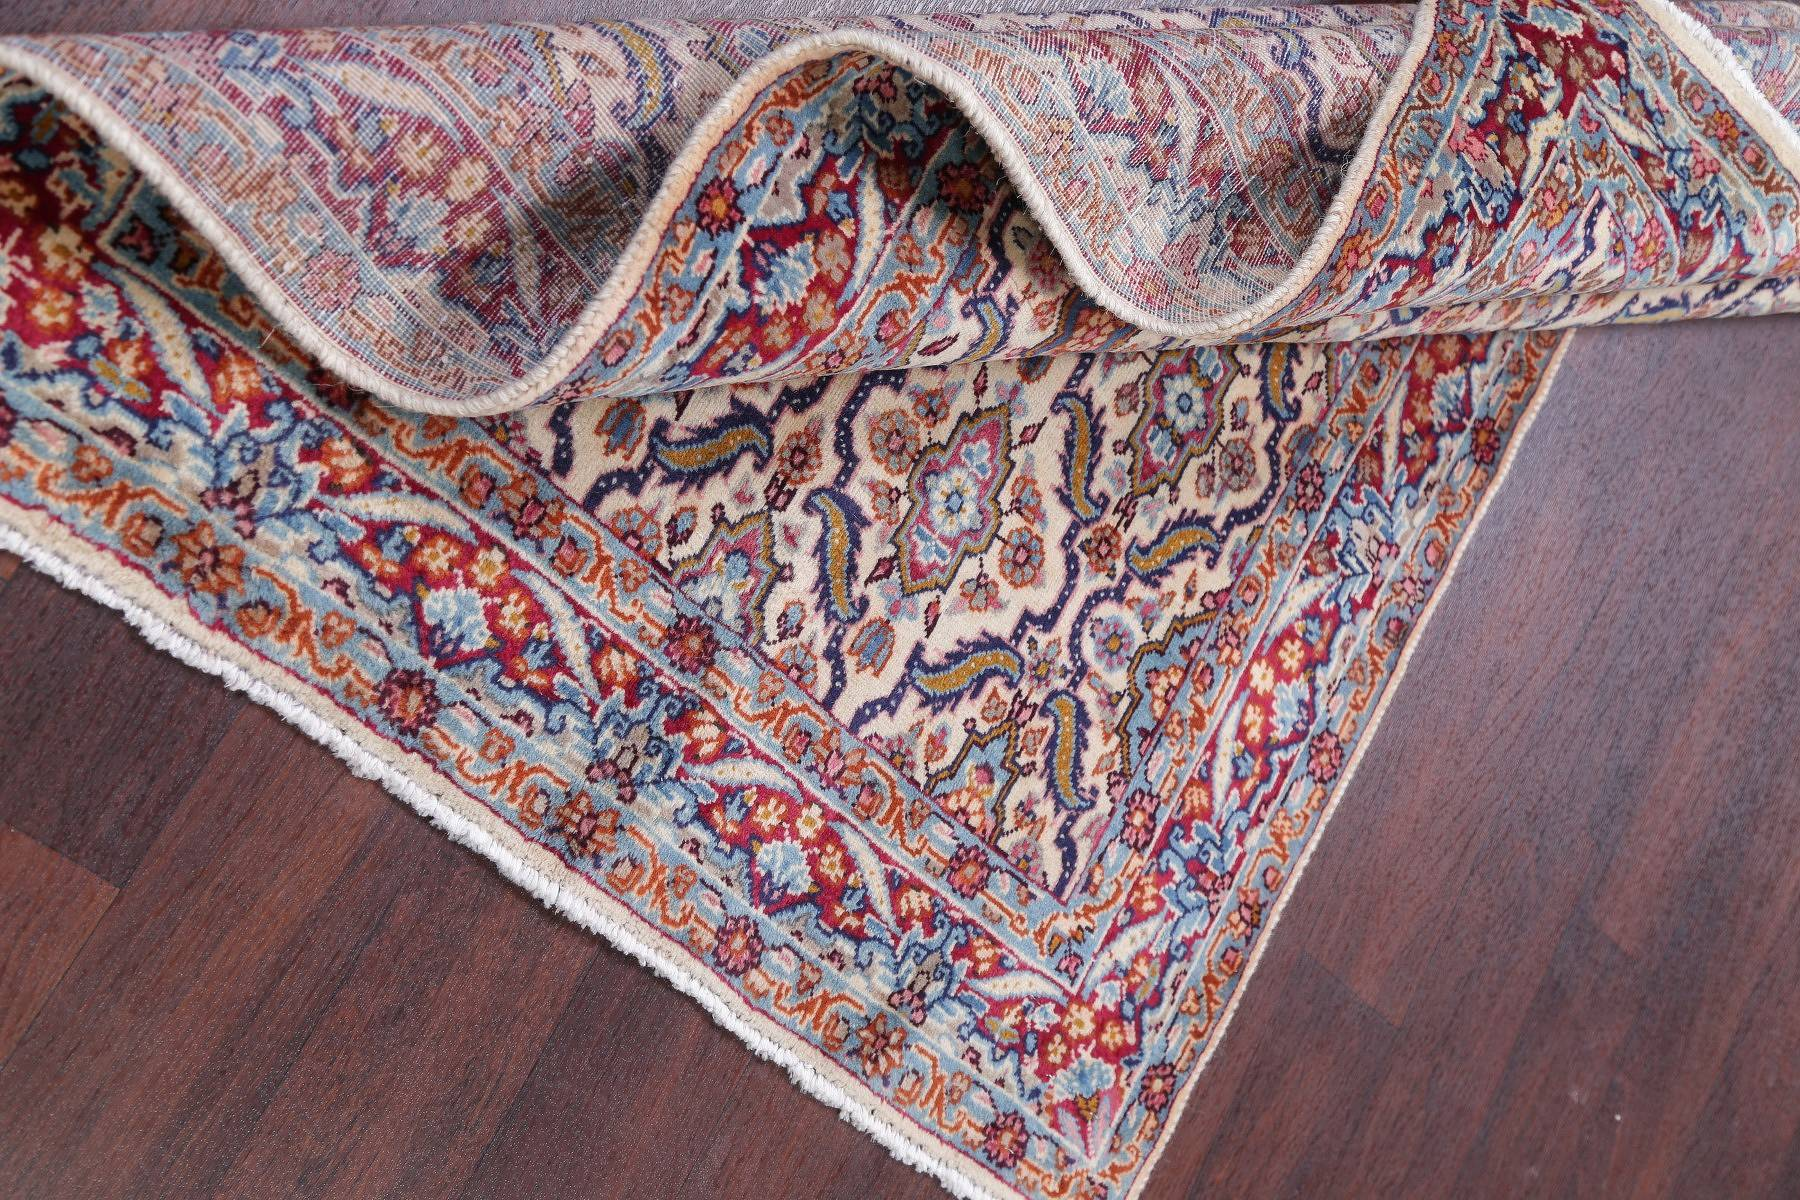 Floral Tabriz Persian Hand-Knotted 3x5 Wool Rug